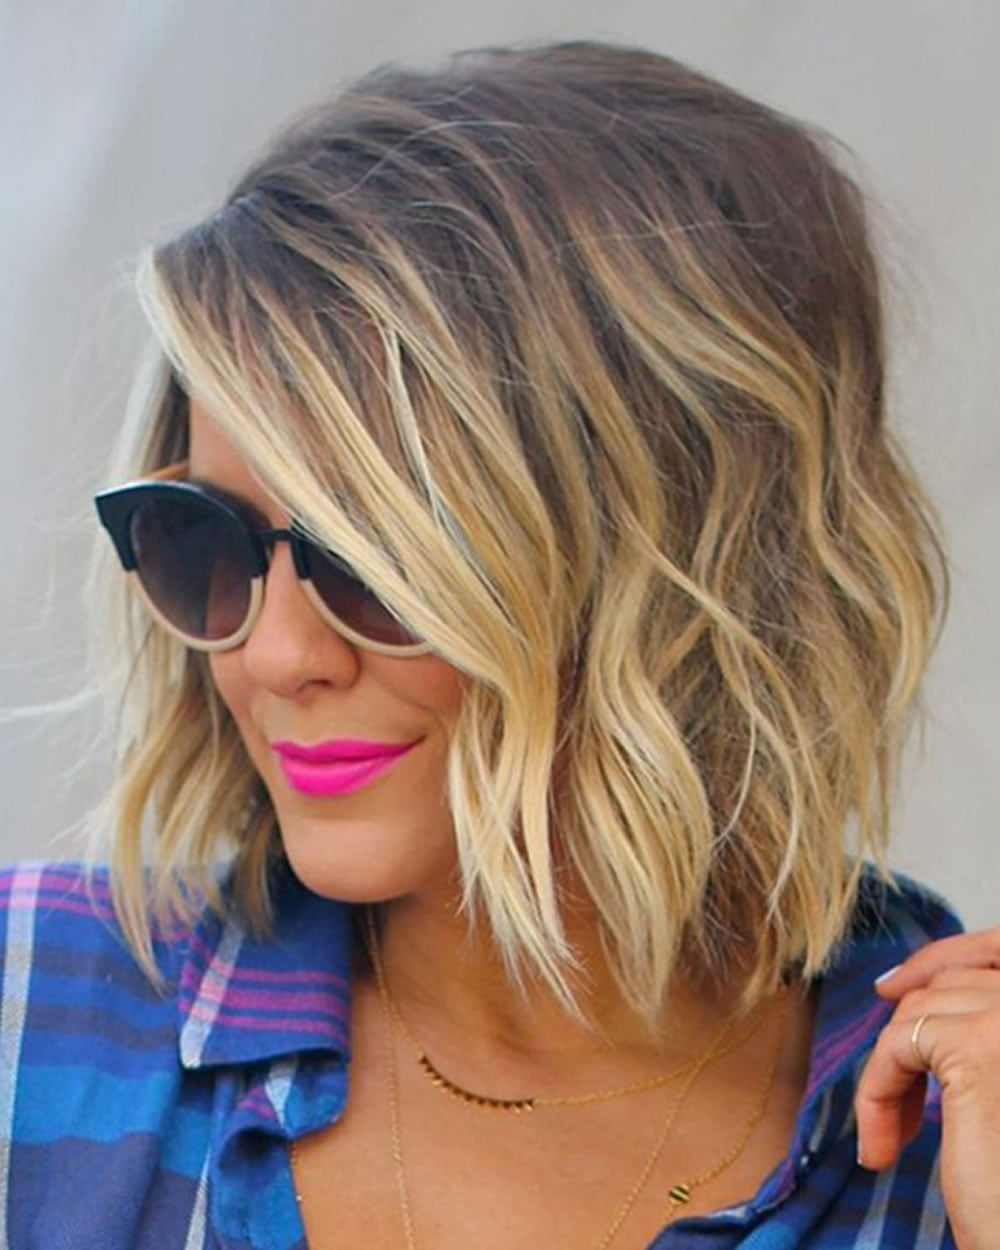 Tumblr Frisuren Locken 20 Latest Mixed 2018 Short Haircuts For Women Bob Pixie